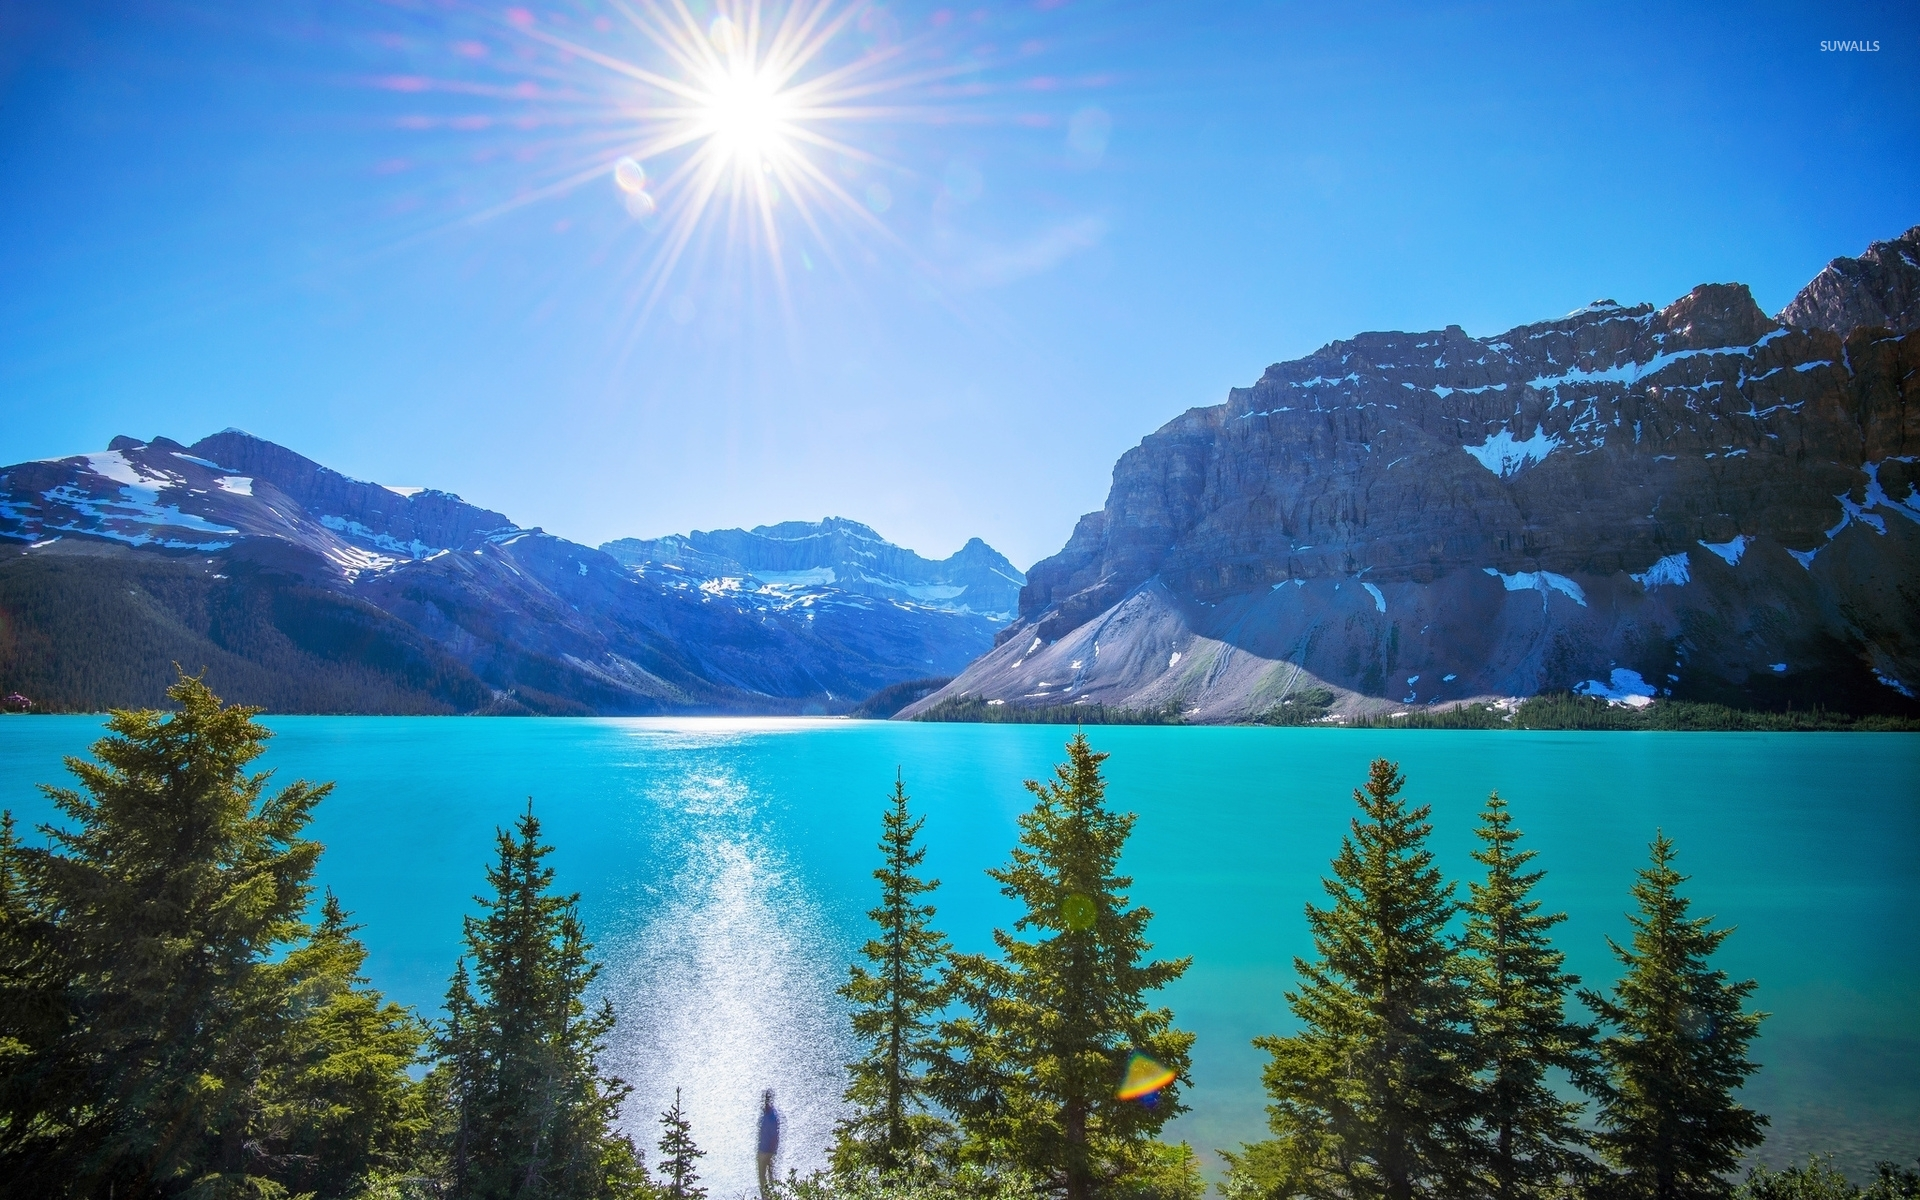 Bright sun in the clear sky above the mountain lake wallpaper